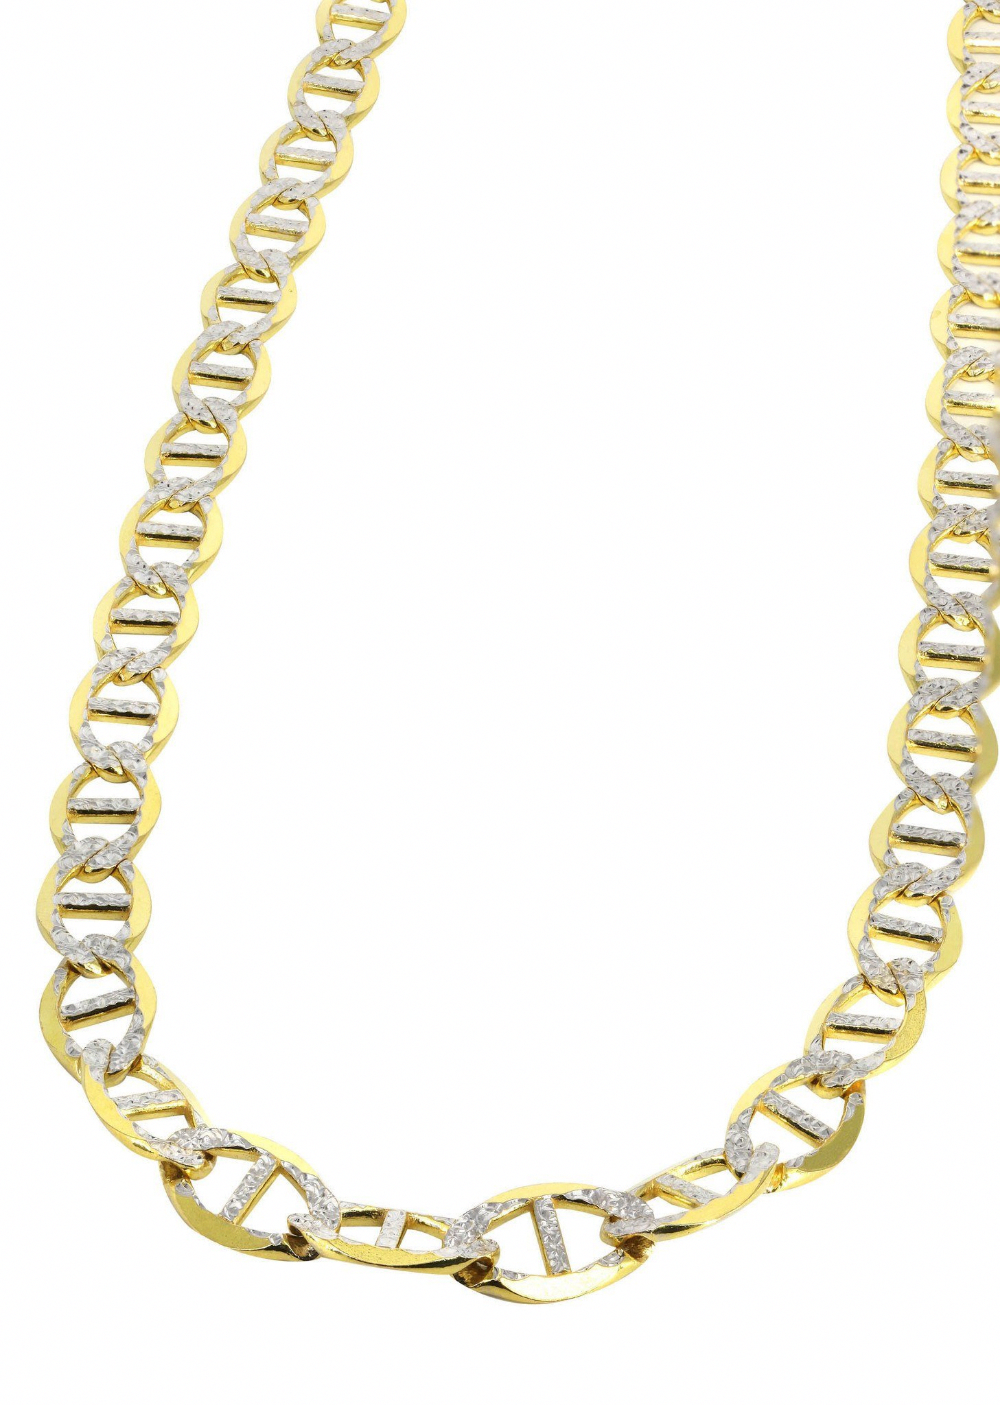 Pin On Gold Jewelry You Ll Love To Browse